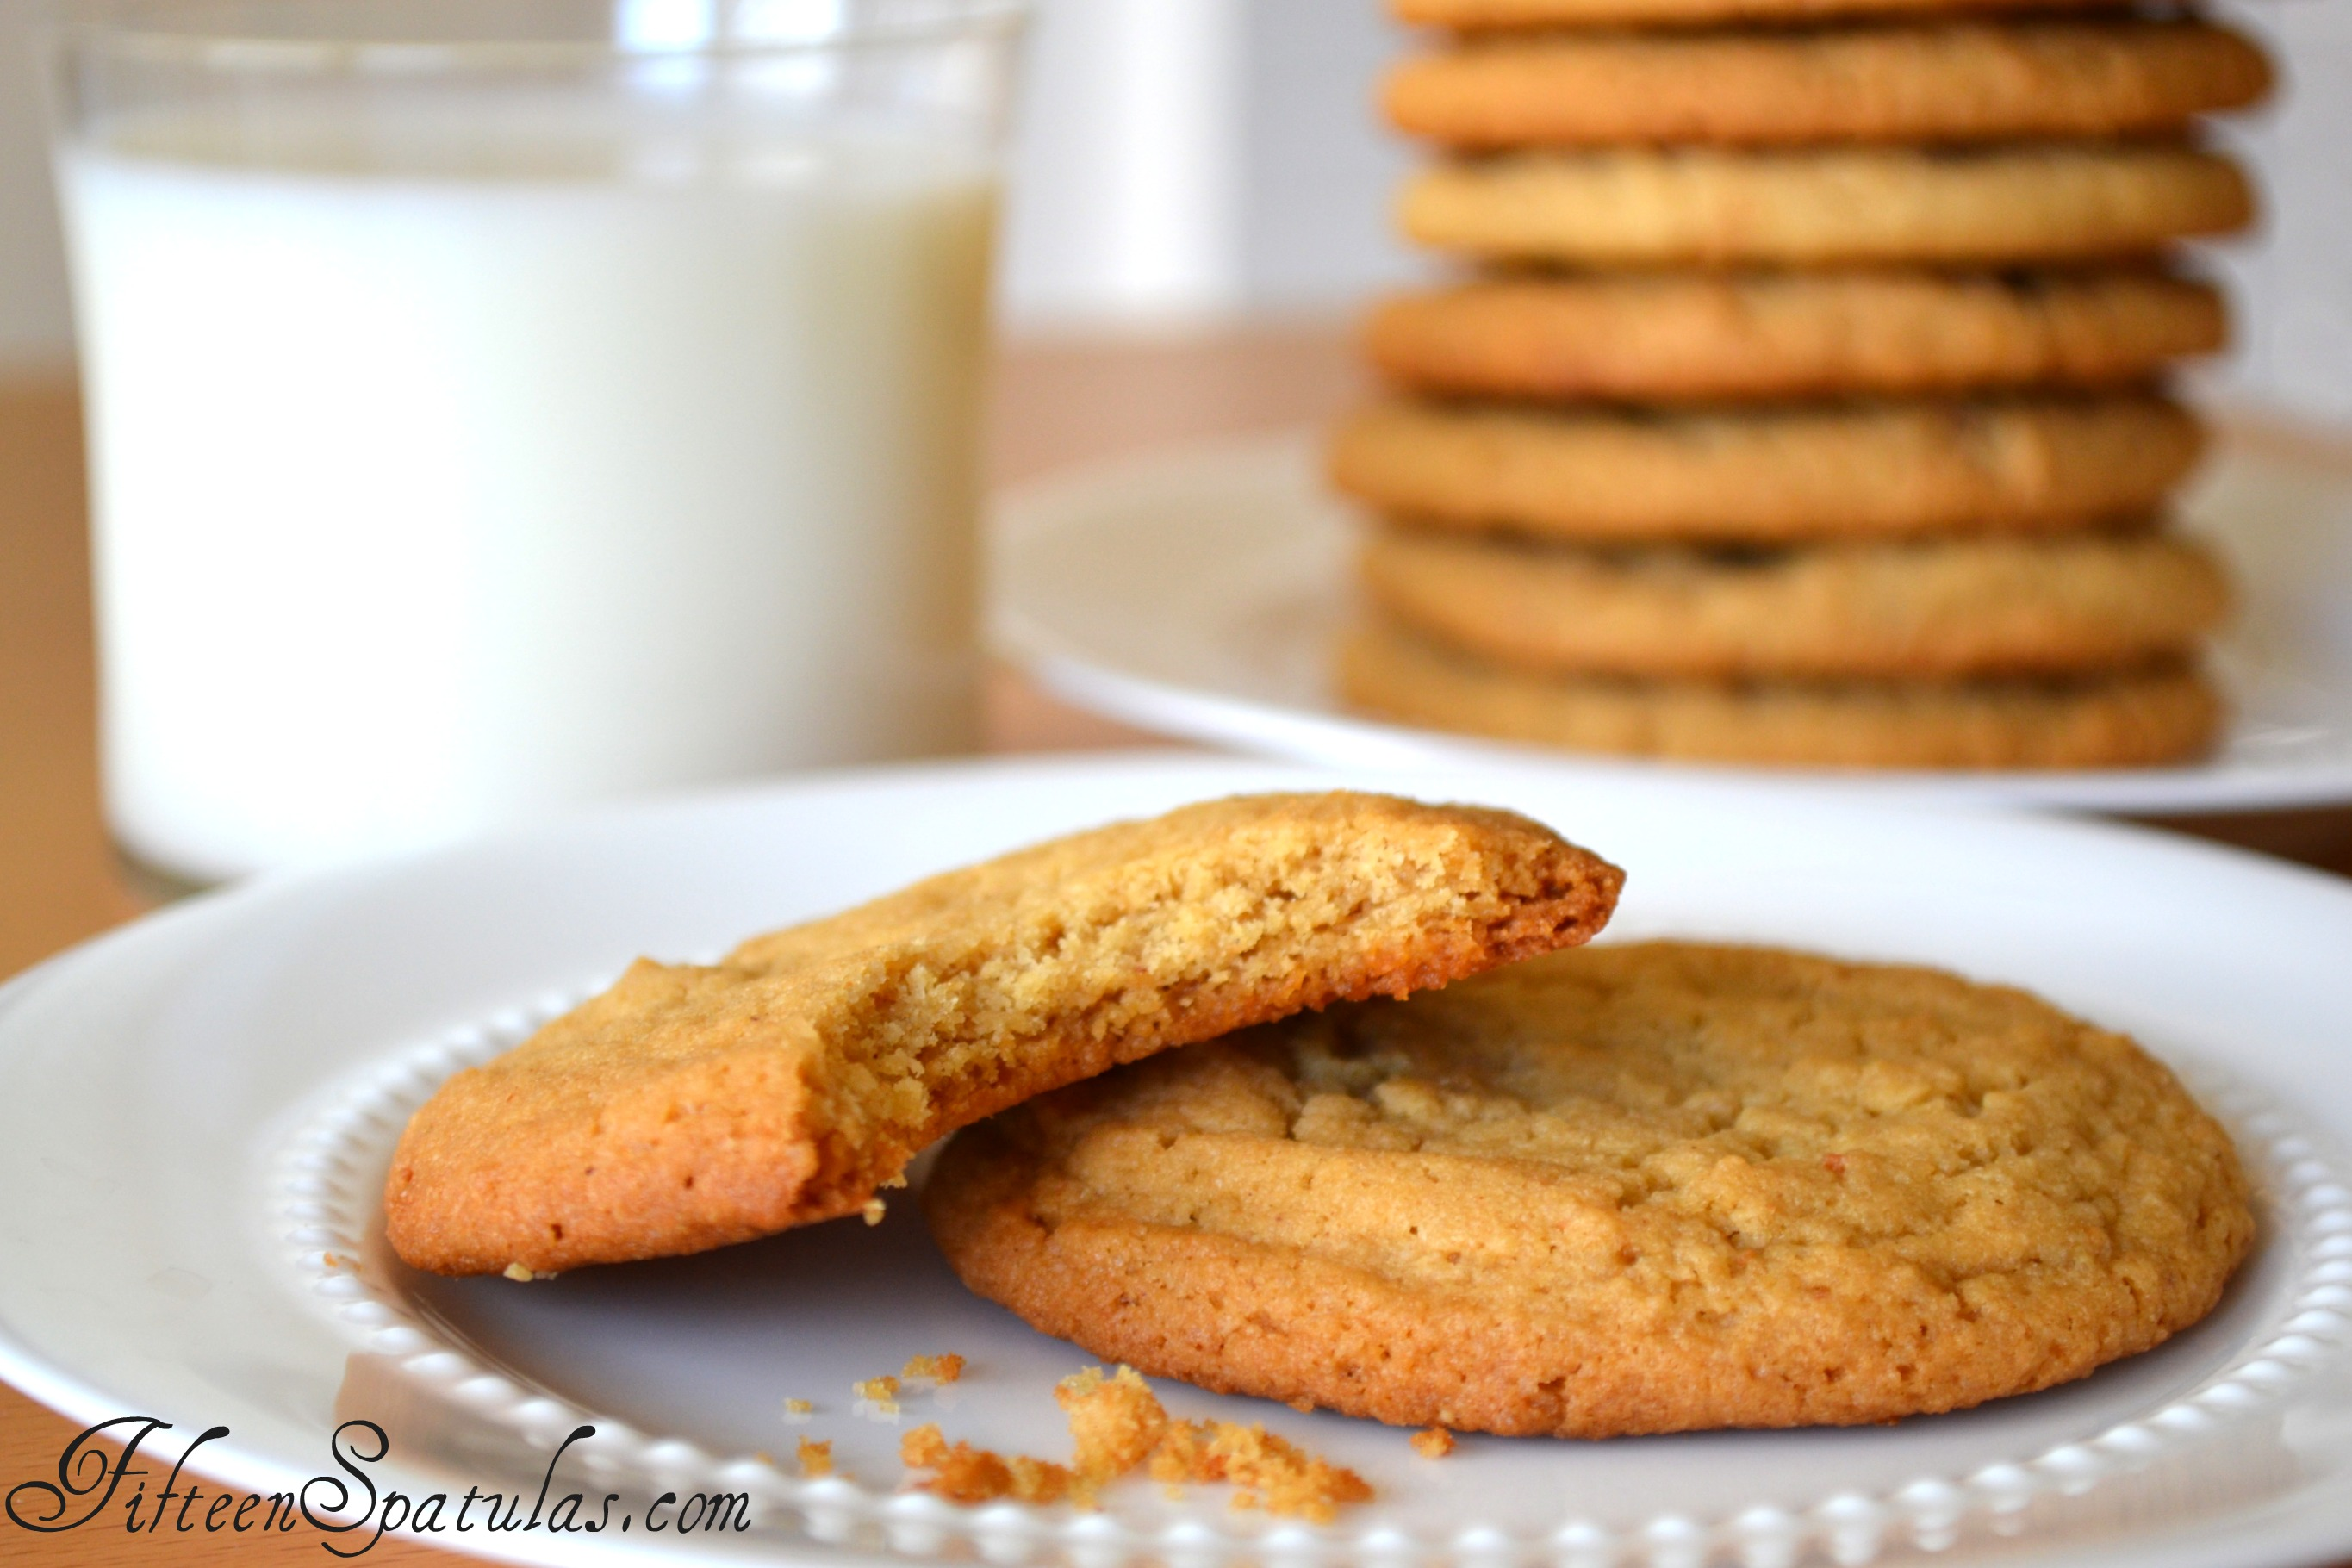 Peanut Butter Cookies on a Plate with Glass of Milk